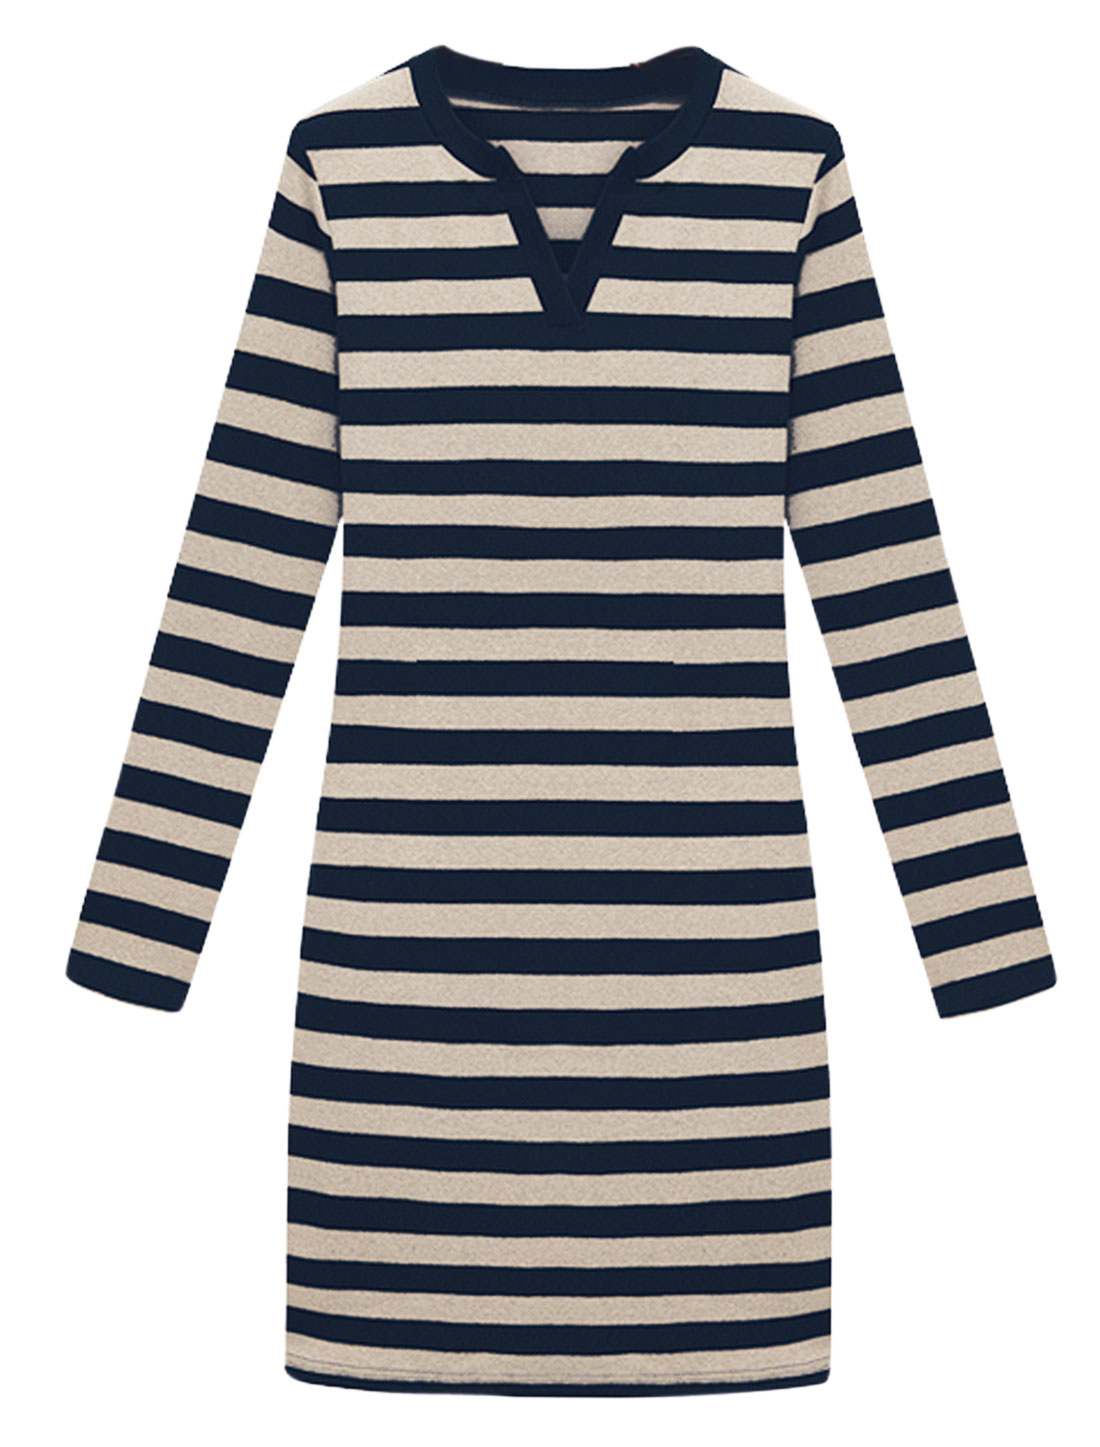 Cozy Fit Pullovr Stripes Pattern Casual Sheath Drss for Lady Navy Blue Beige